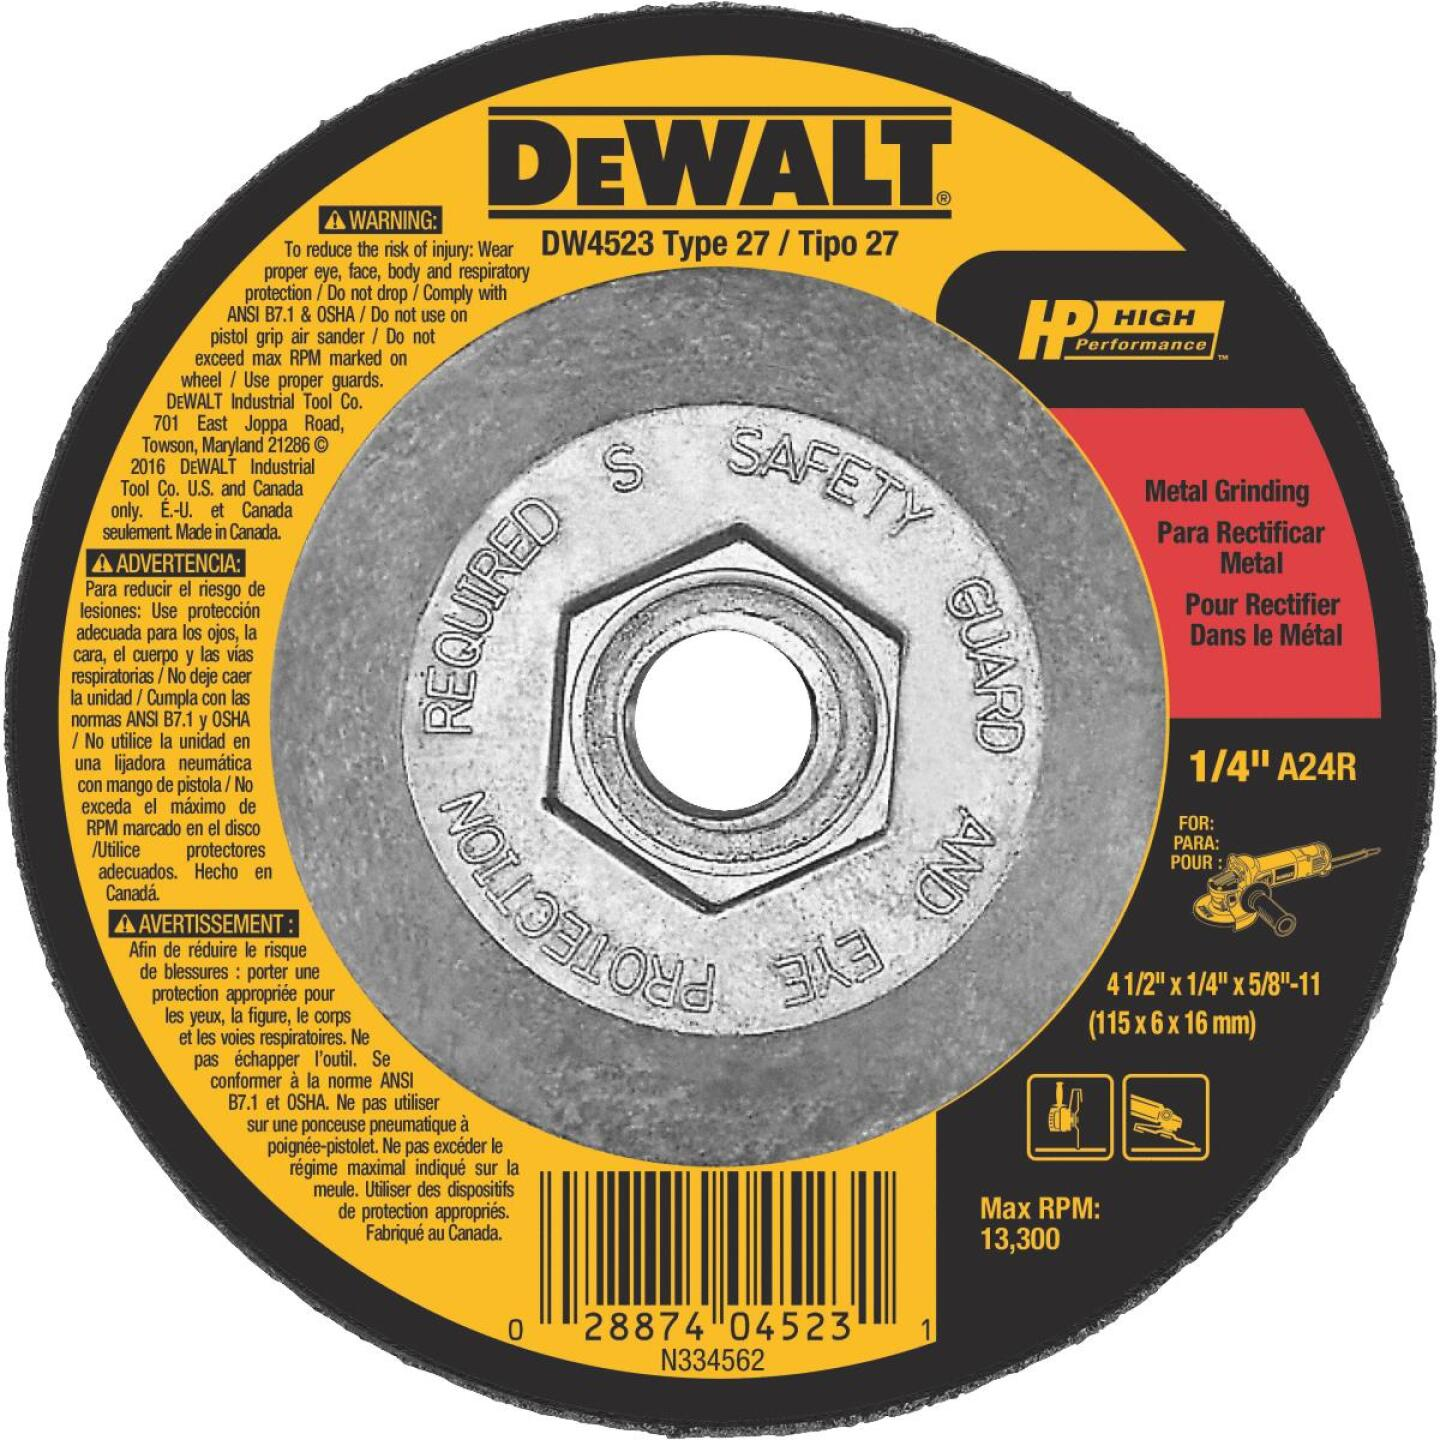 DeWalt High Performance 4-1/2 In. x 1/4 In. x 5/8 In.-11 Metal Cut-Off Wheel Image 1